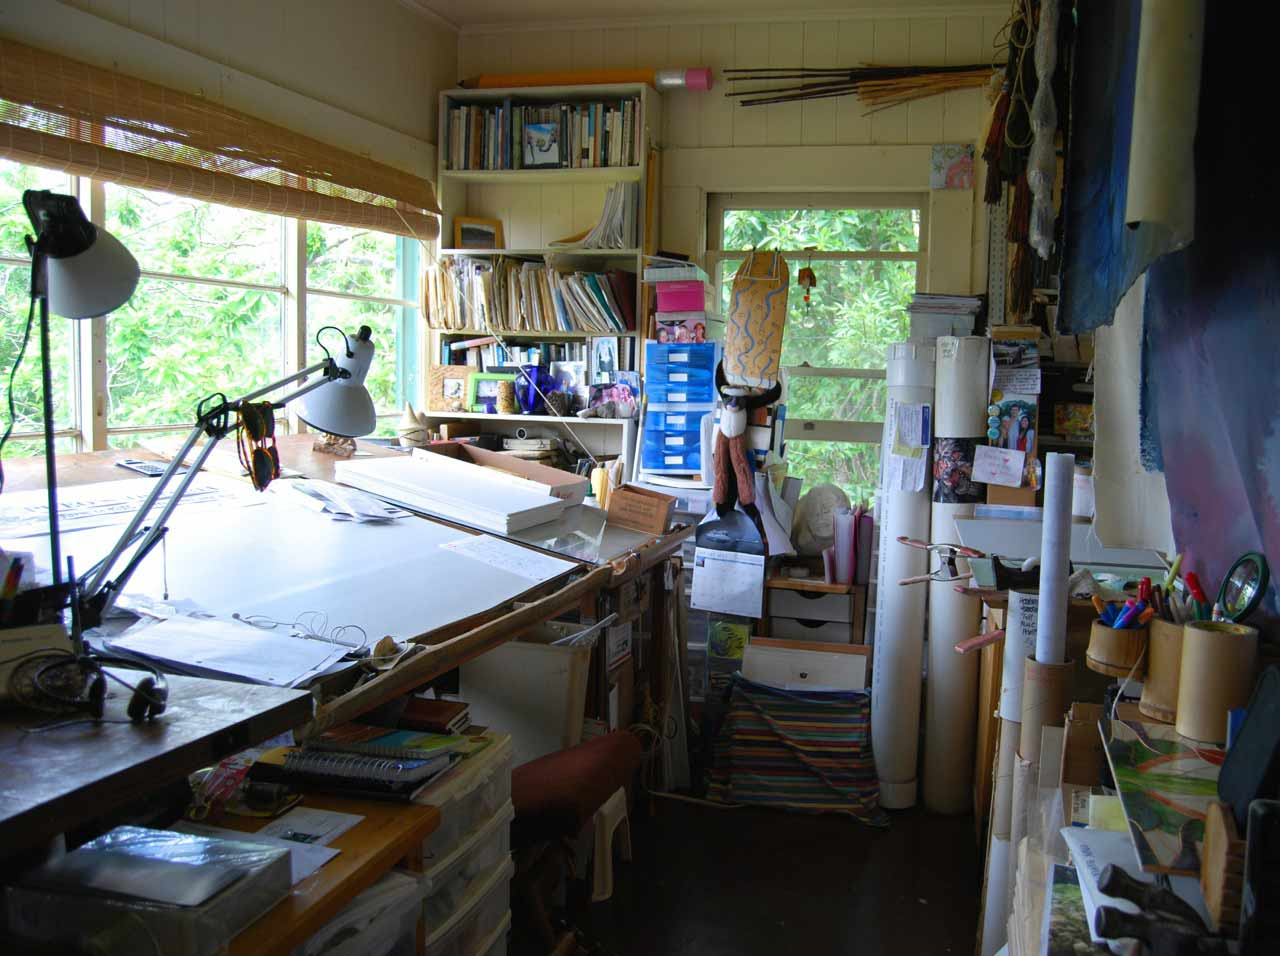 Creative chaos - highly organized studio of Calley O'Neill's